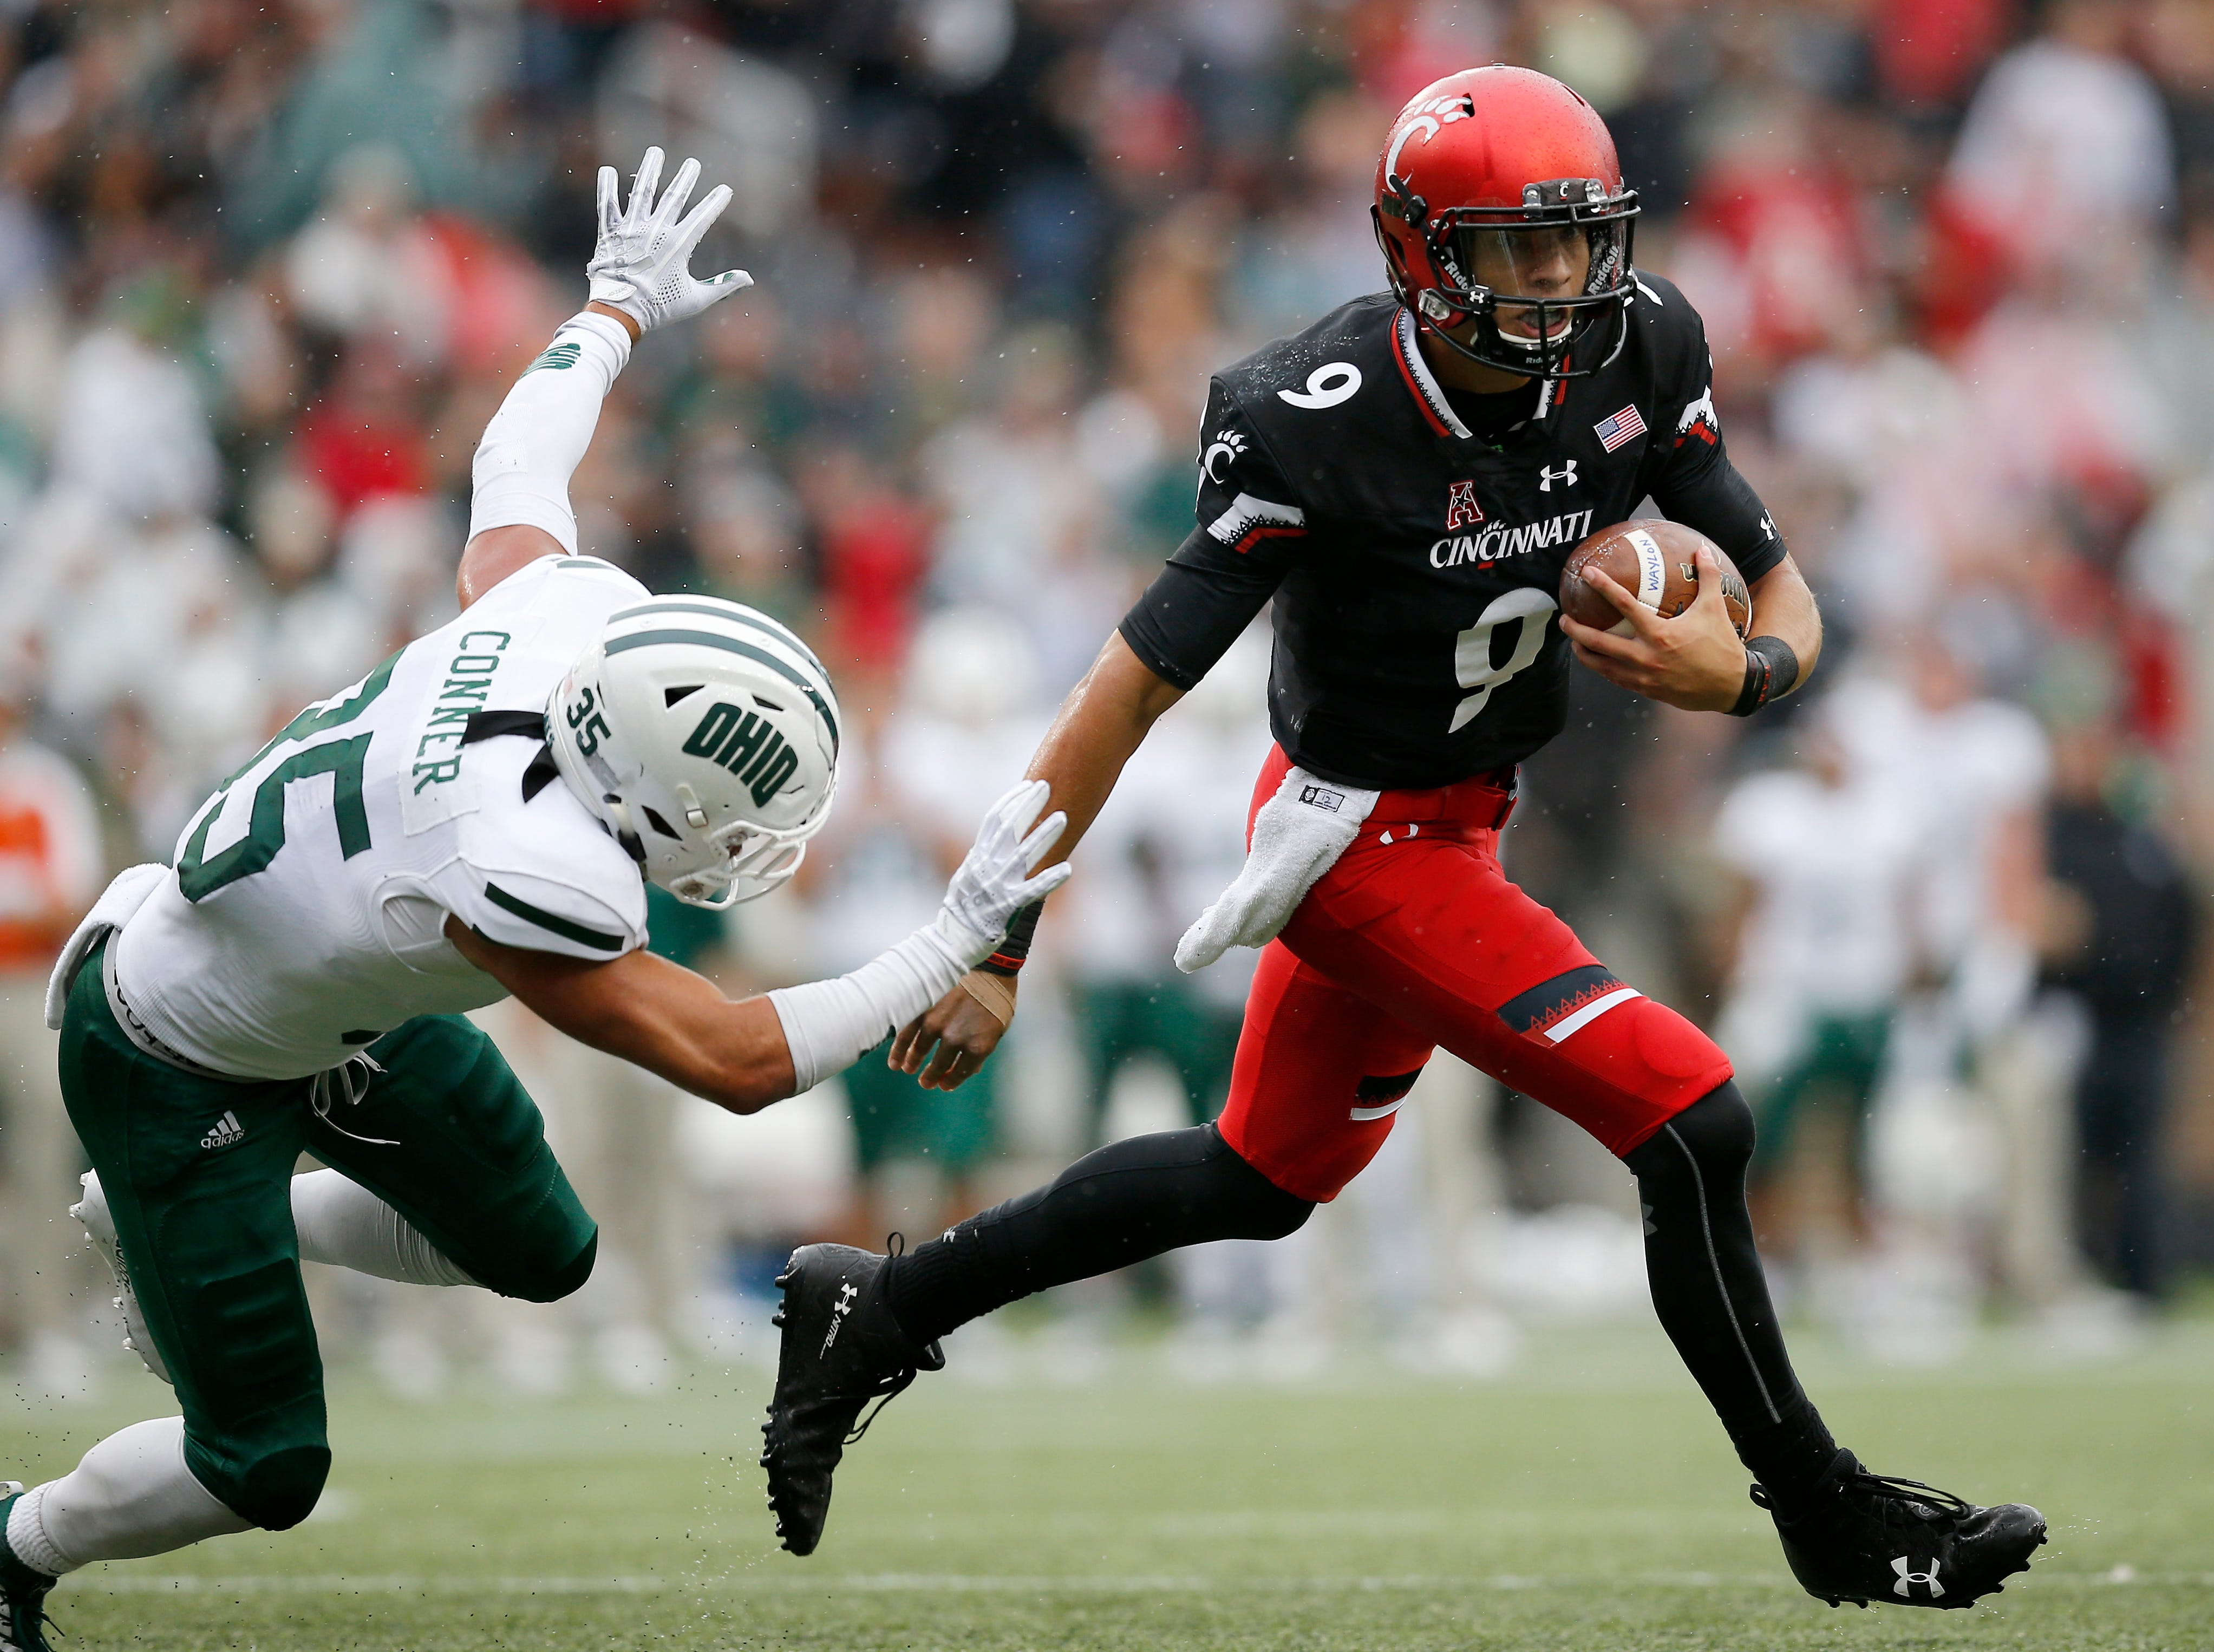 Cincinnati Bearcats quarterback Desmond Ridder (9) breaks away on a touchdown run in the third quarter of the NCAA football game between the Cincinnati Bearcats and the Ohio Bobcats at Nippert Stadium on the University of Cincinnati campus in Cincinnati on Saturday, Sept. 22, 2018. The Bearcats overcame a 24-7 deficit at halftime to win 34-30, improving to 4-0 on the season.